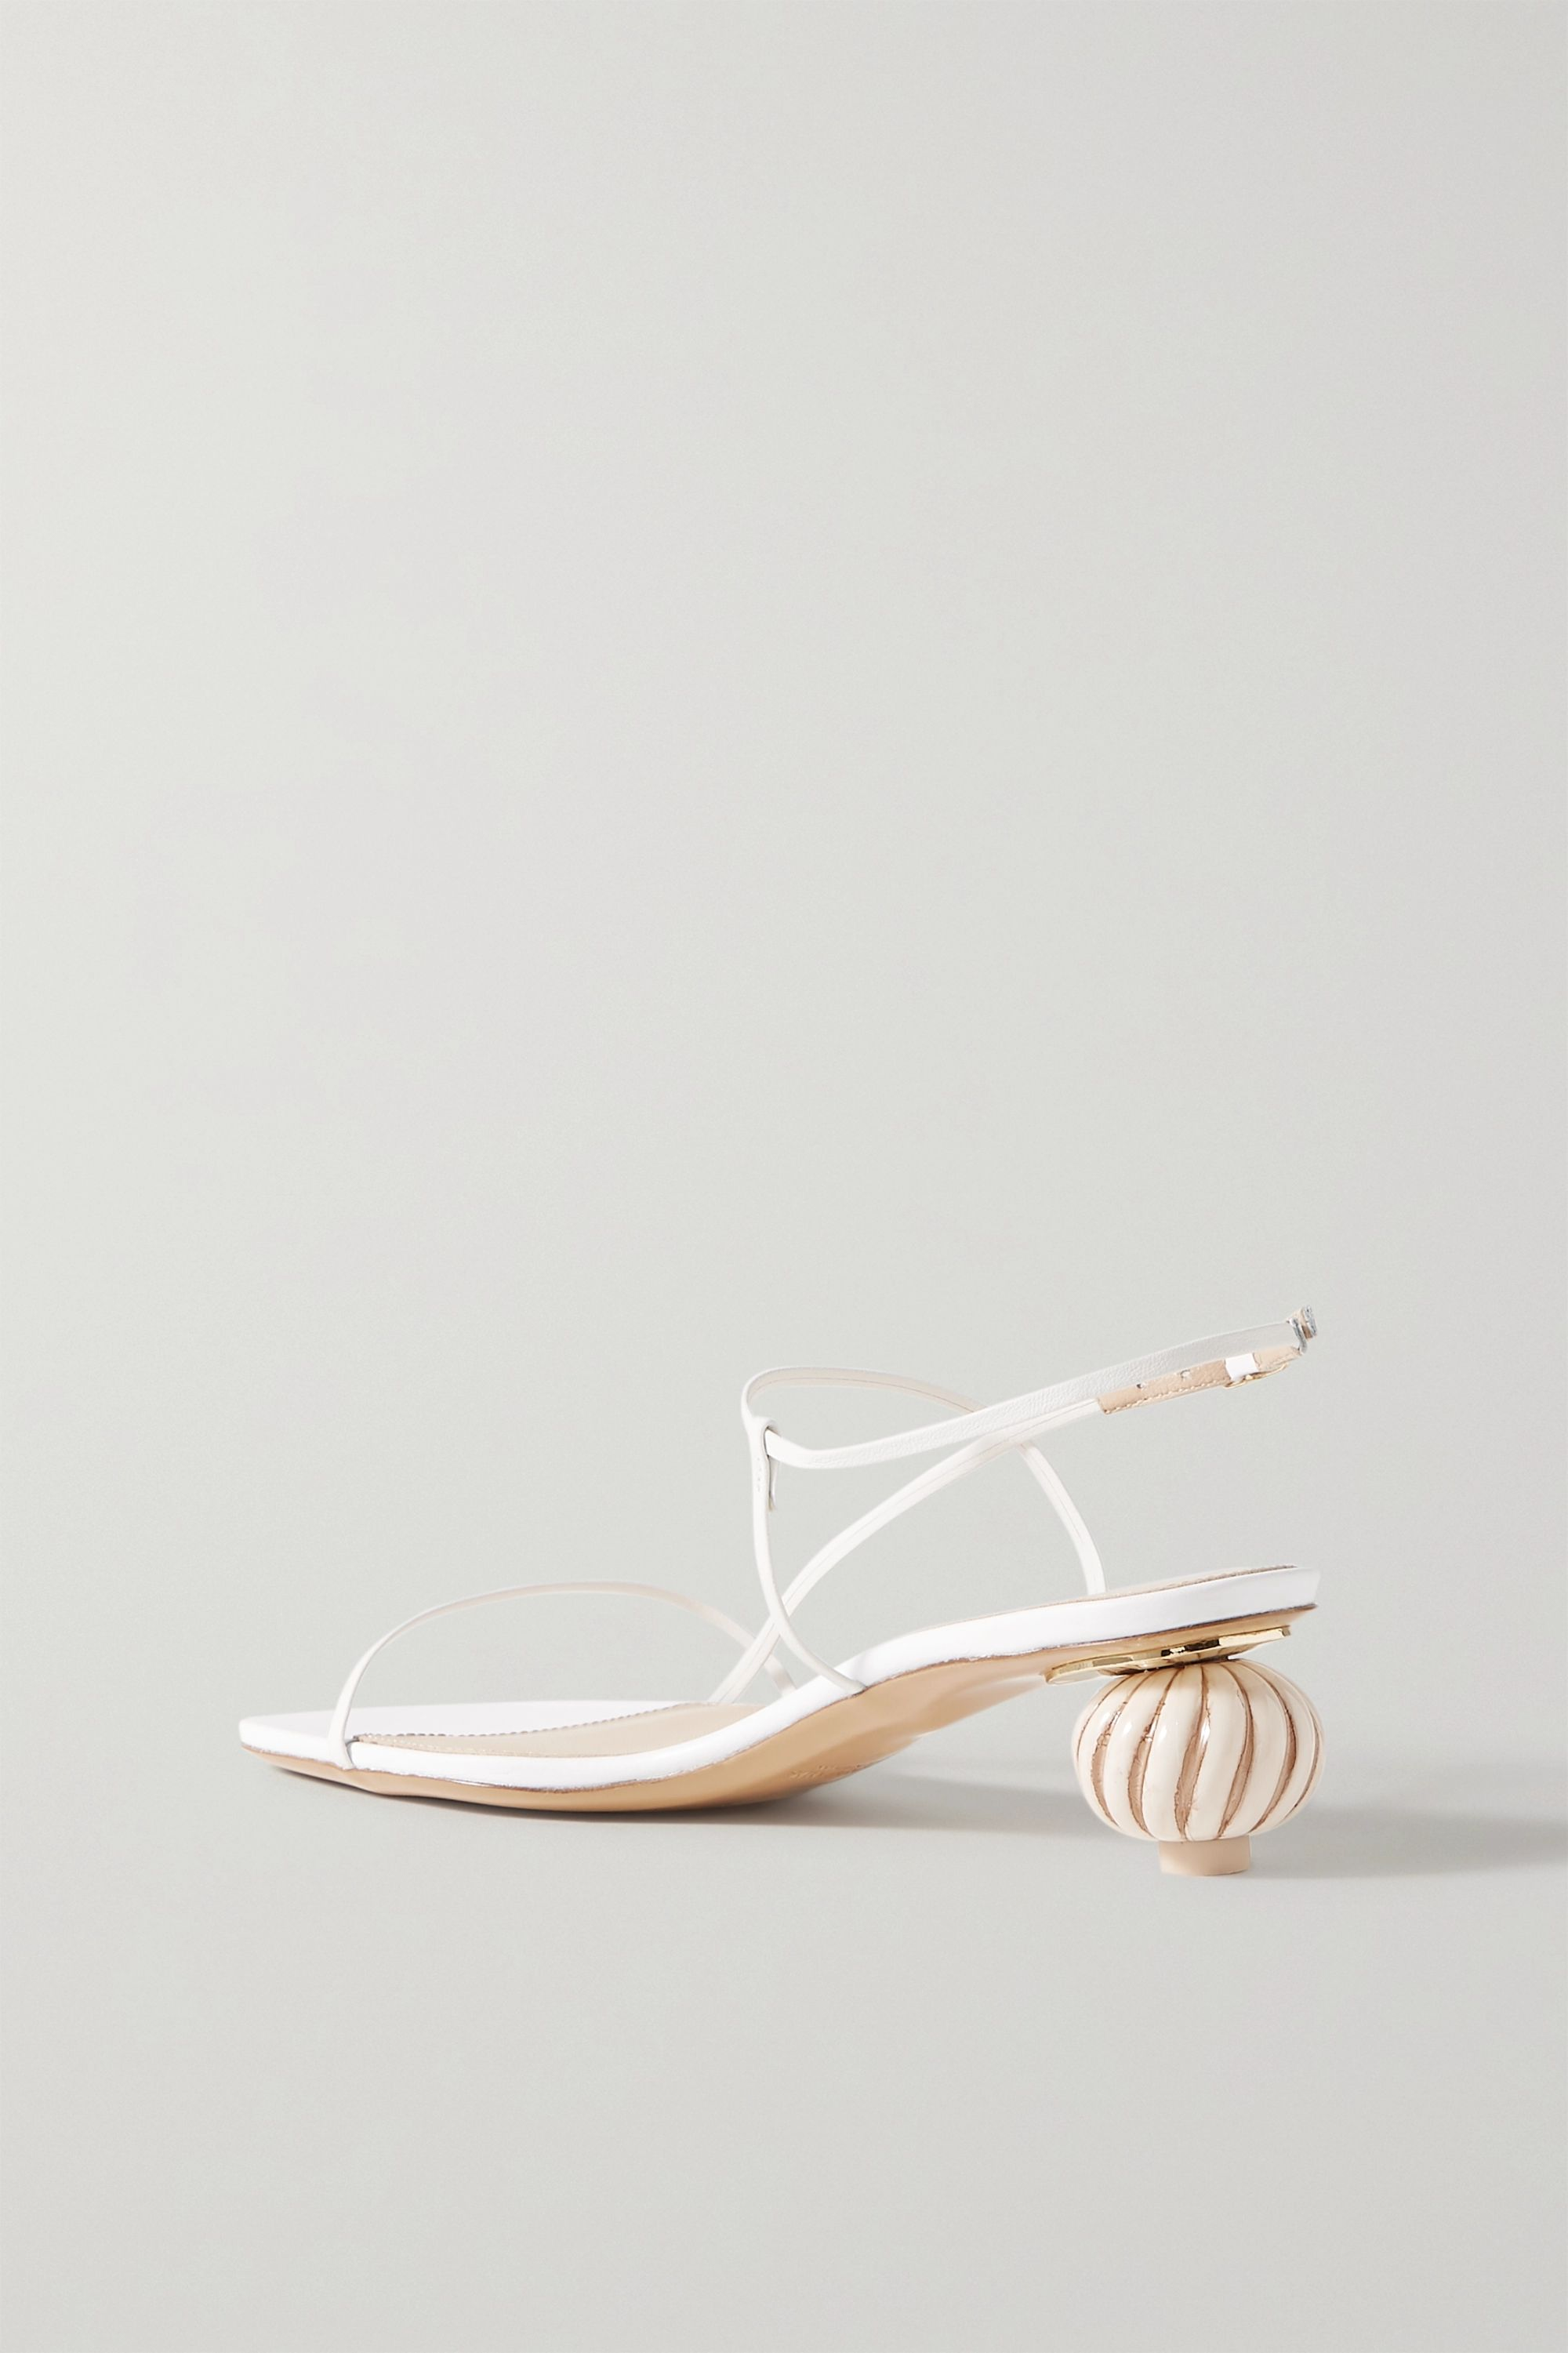 Jacquemus Manosque leather sandals